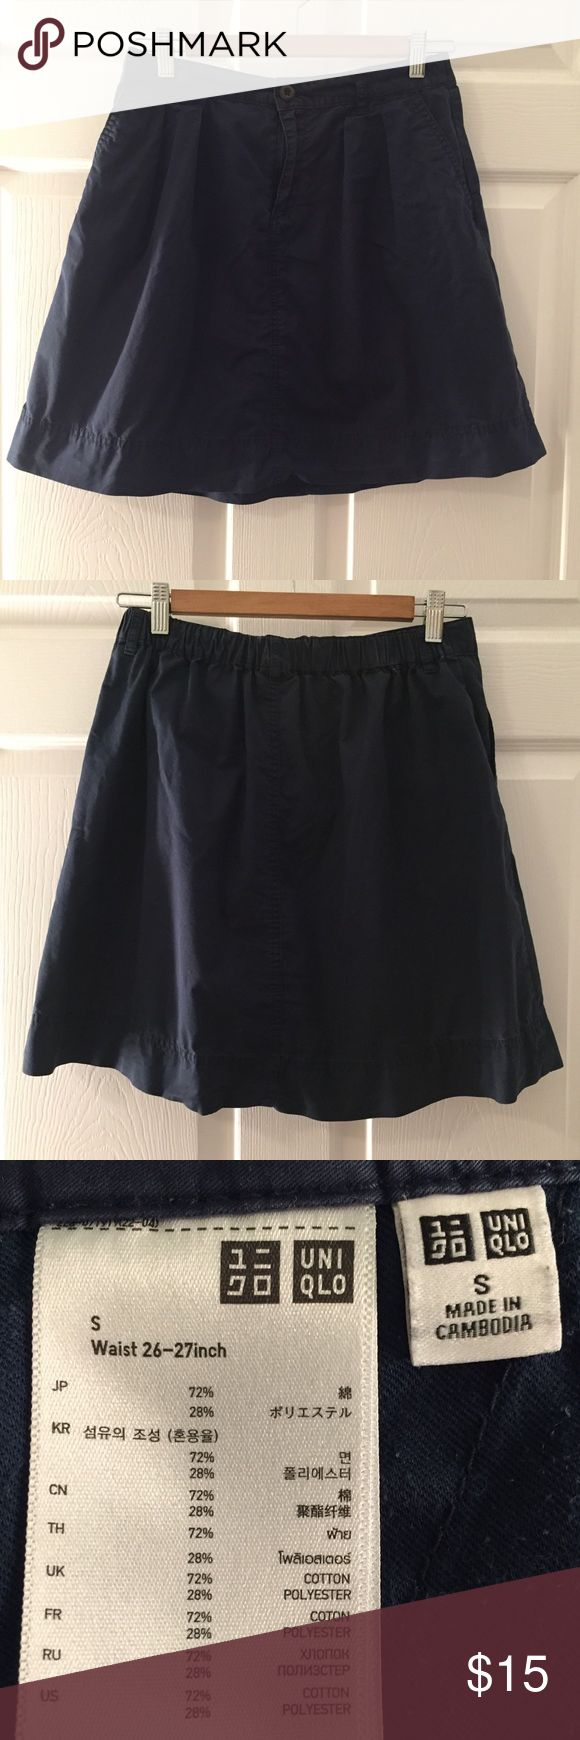 Uniqlo skirt Uniqlo skirt in navy color. Used but in good condition. Can we worn casually or as work wear. Pair with a blouse, tank, or tshirt. Great versatile color and can be used spring, summer, or fall. pair it with a cognac bag. Check out the purses in my closet too. ✨Bundles of 3+ items get 15% off! Uniqlo Skirts